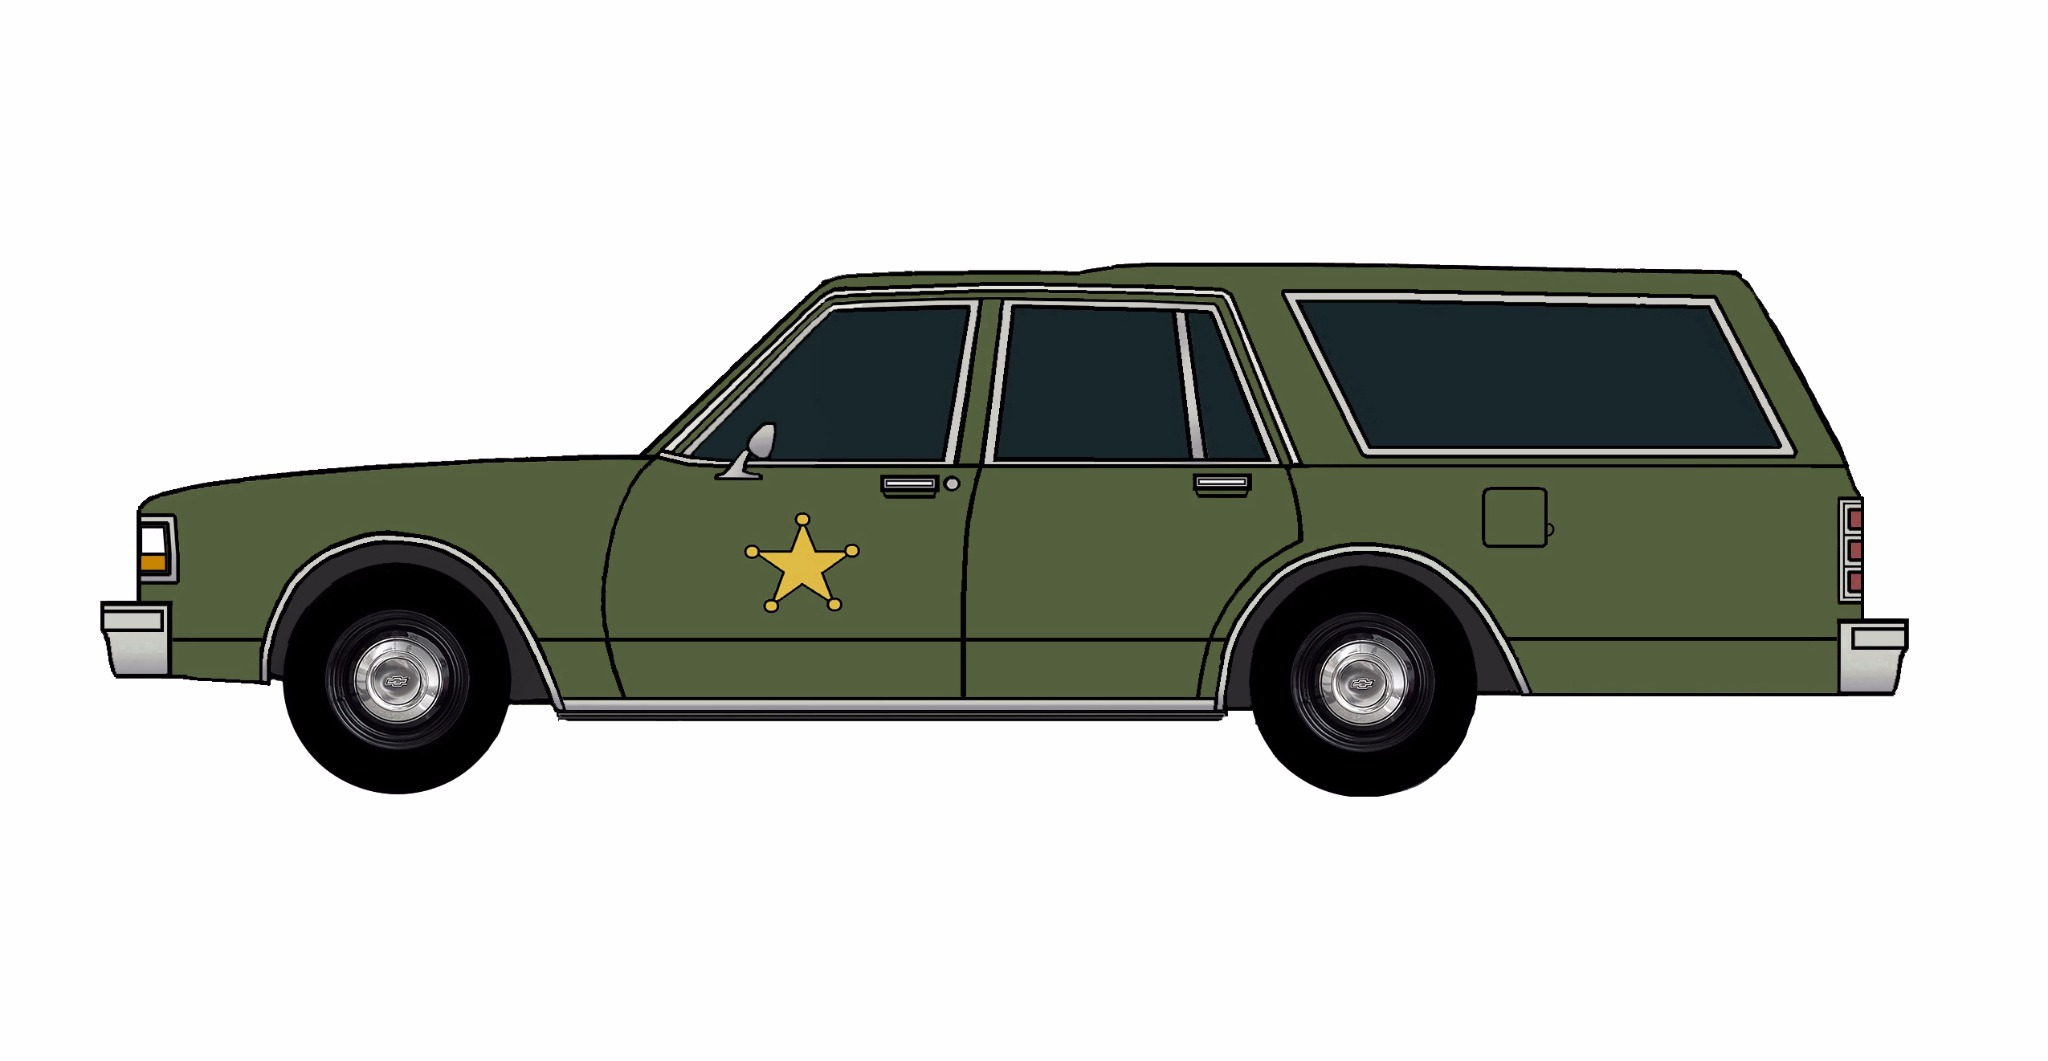 1987 Chevy Caprice 9C1 Wagon ARMY GREEN